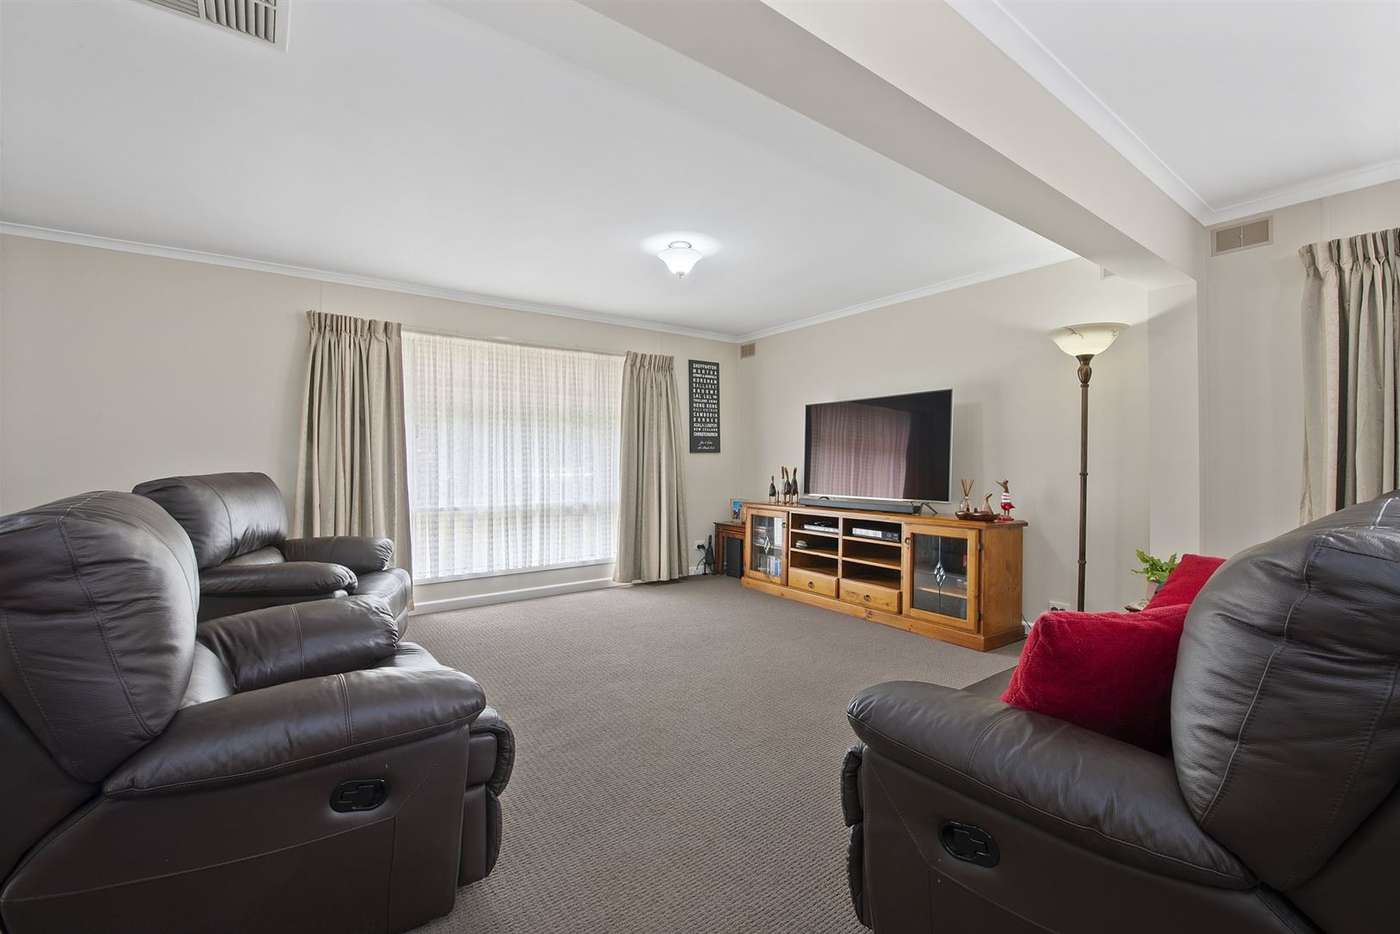 Fifth view of Homely house listing, 40 Woodlands Road, Lal Lal VIC 3352